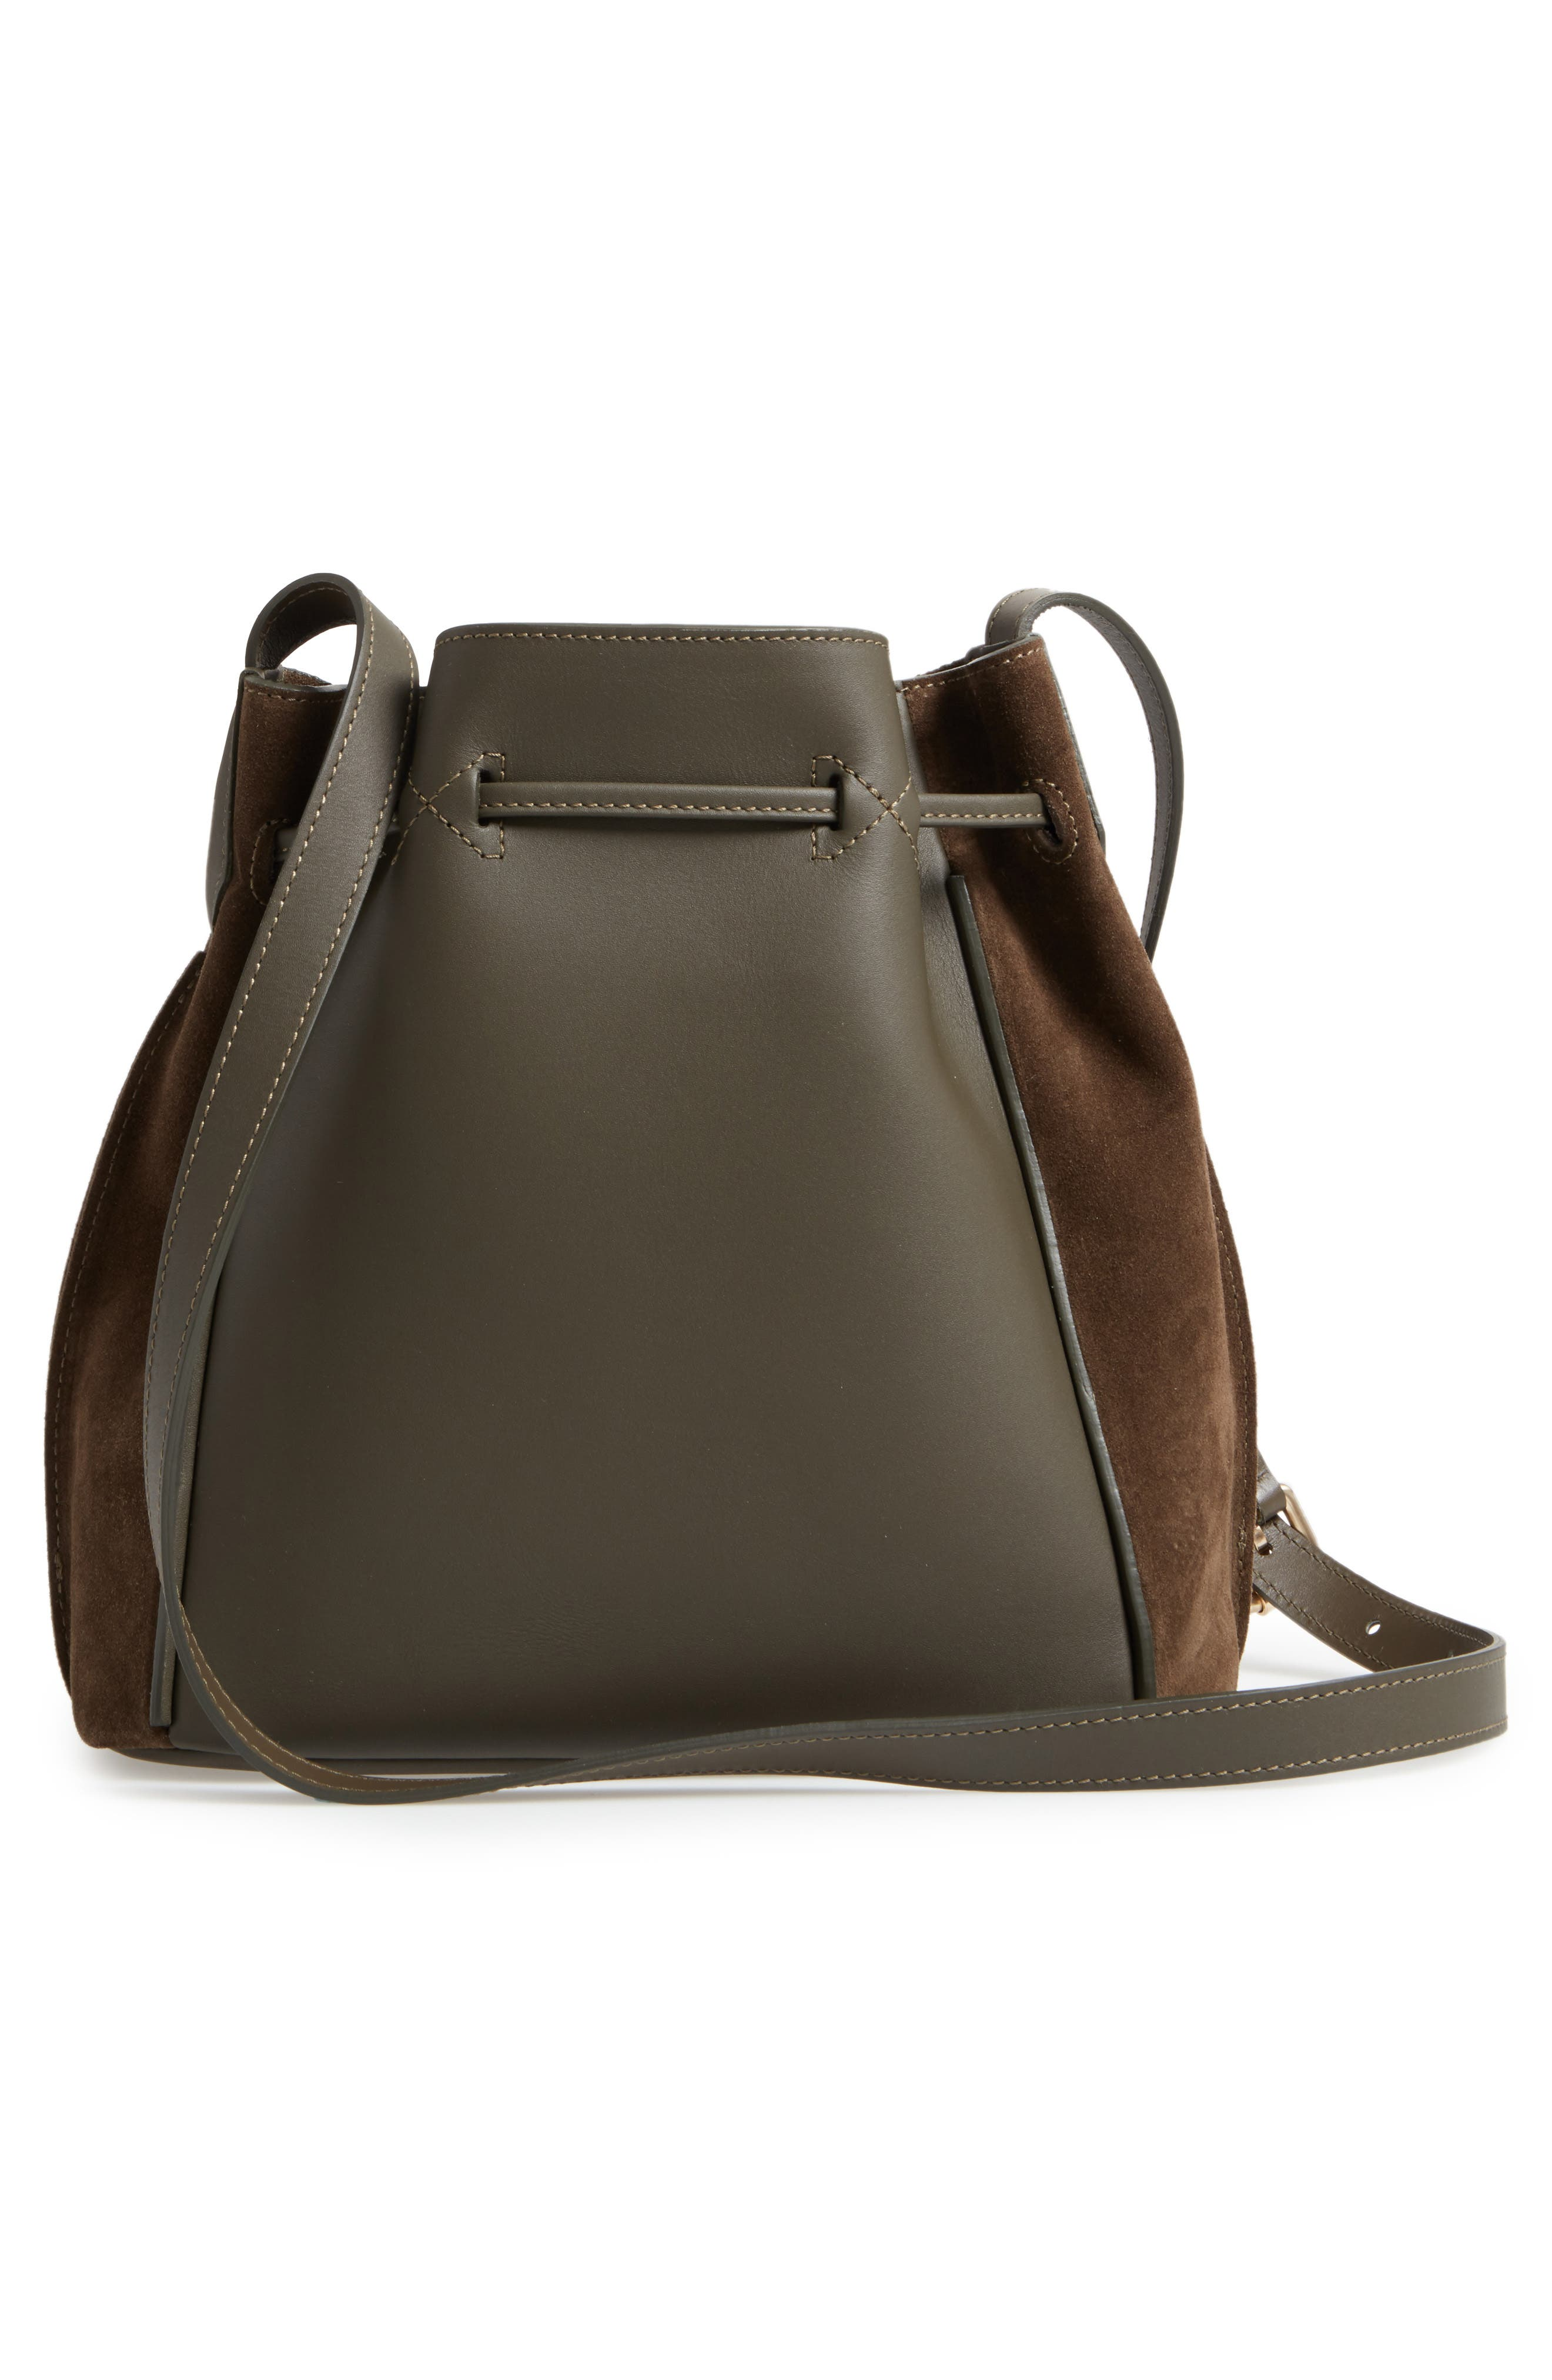 Small Penelope Leather Tote,                             Alternate thumbnail 3, color,                             300